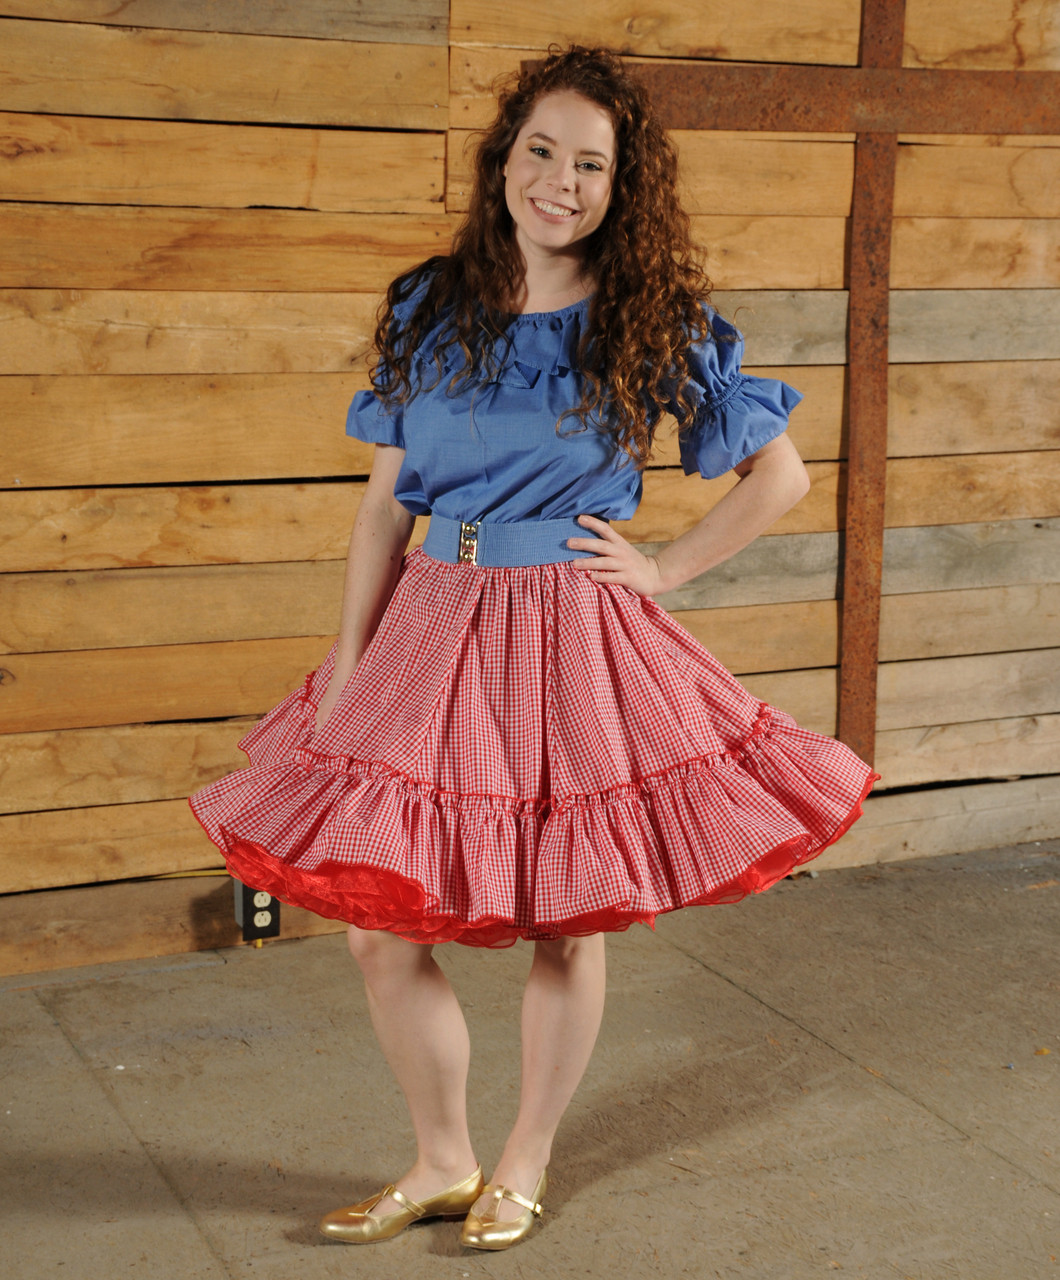 d4b30af2579 342G Gingham Full Circle Skirt with a Single Ruffle on the Bottom ...